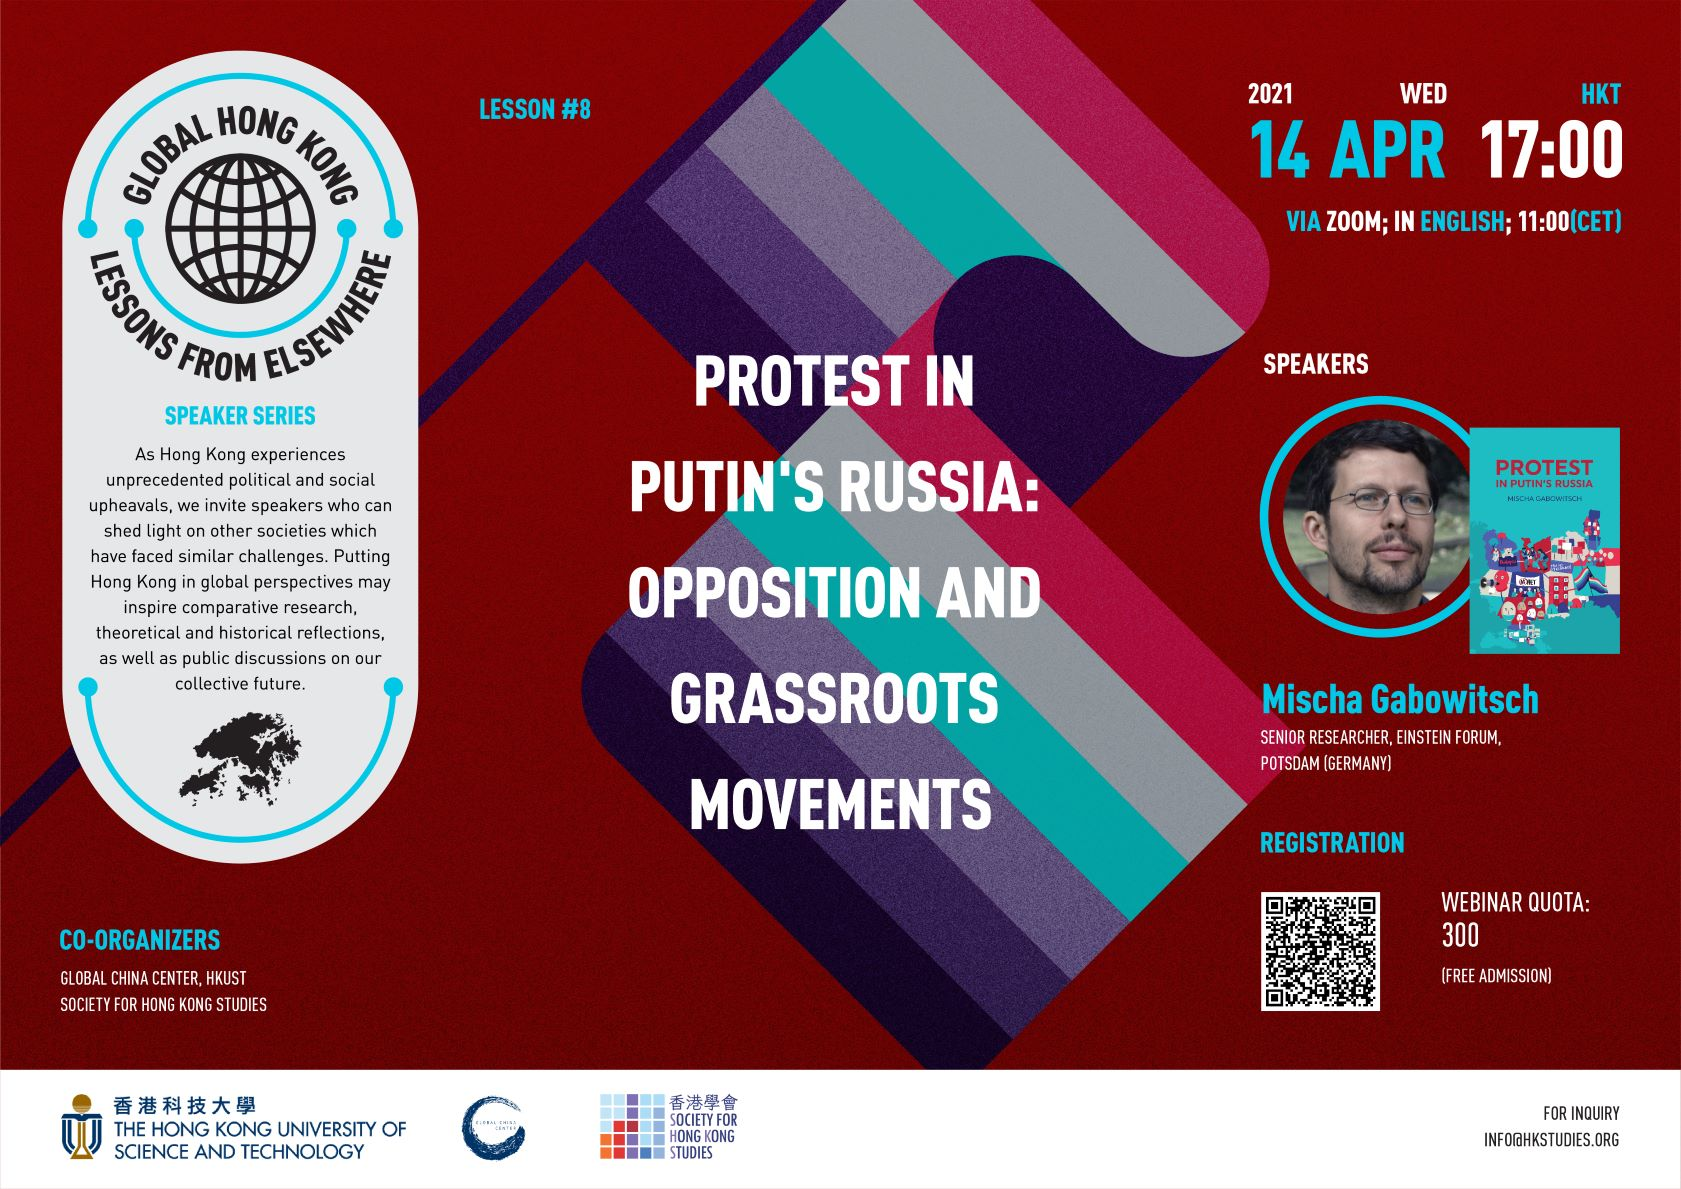 Global Hong Kong: Lessons from Elsewhere Speaker Series – Protest in Putin's Russia: Opposition and Grassroots Movements